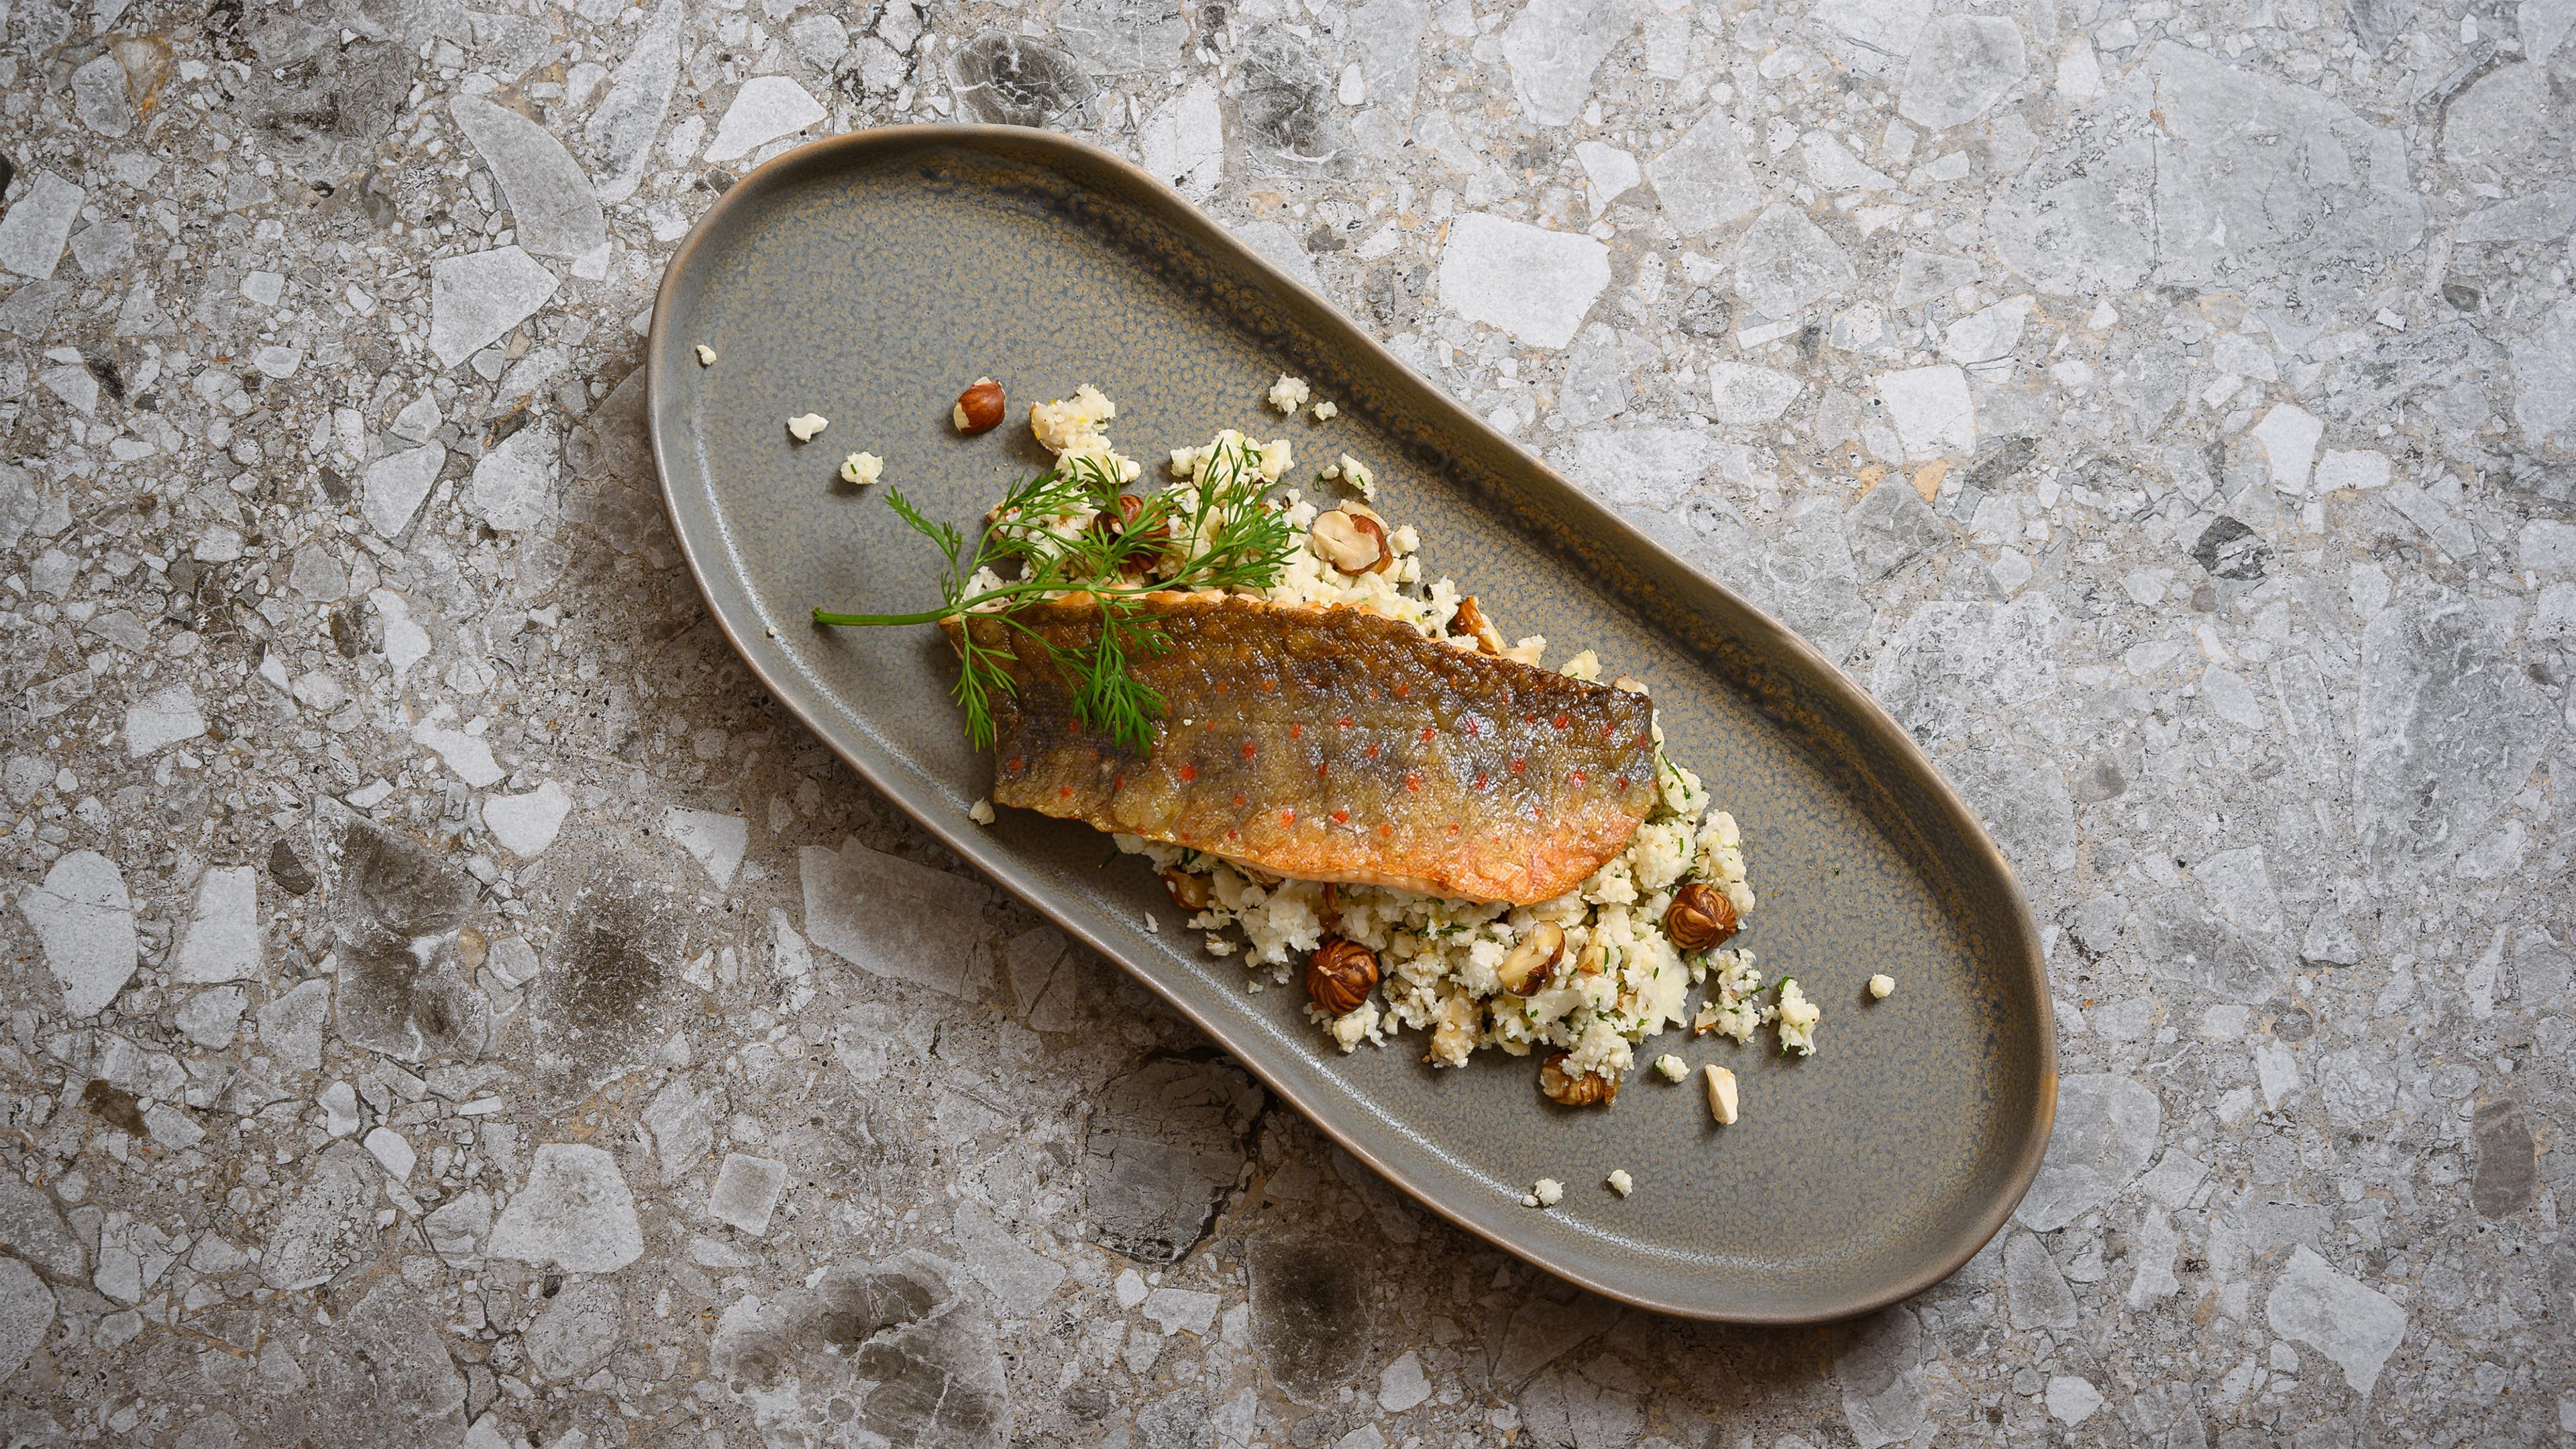 Char on a bed of cauliflower couscous and hazelnuts